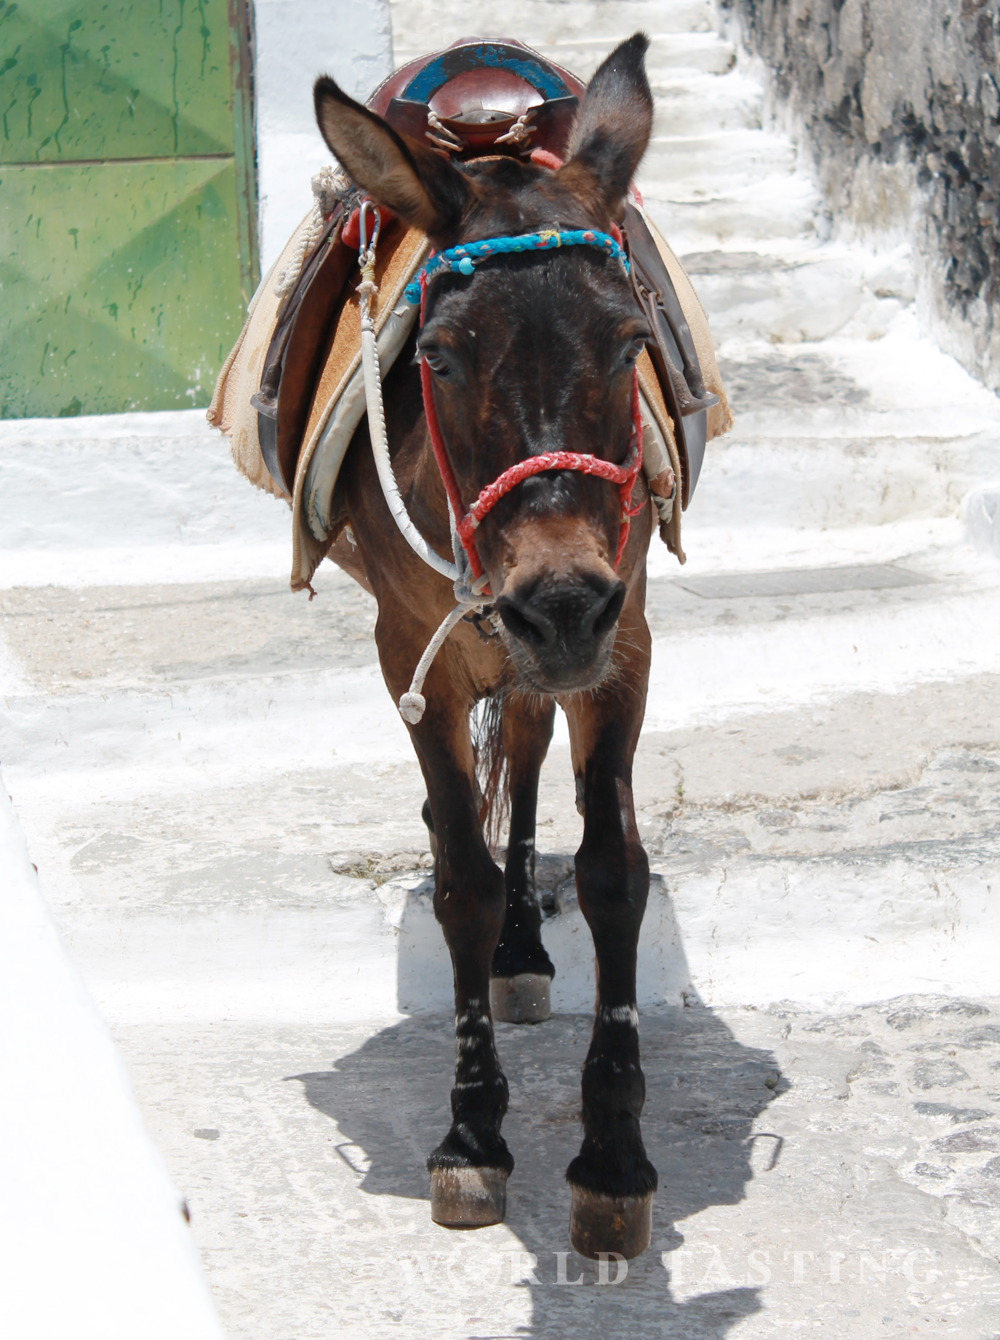 The donkeys are one of the main transportation means on the island of Santorini